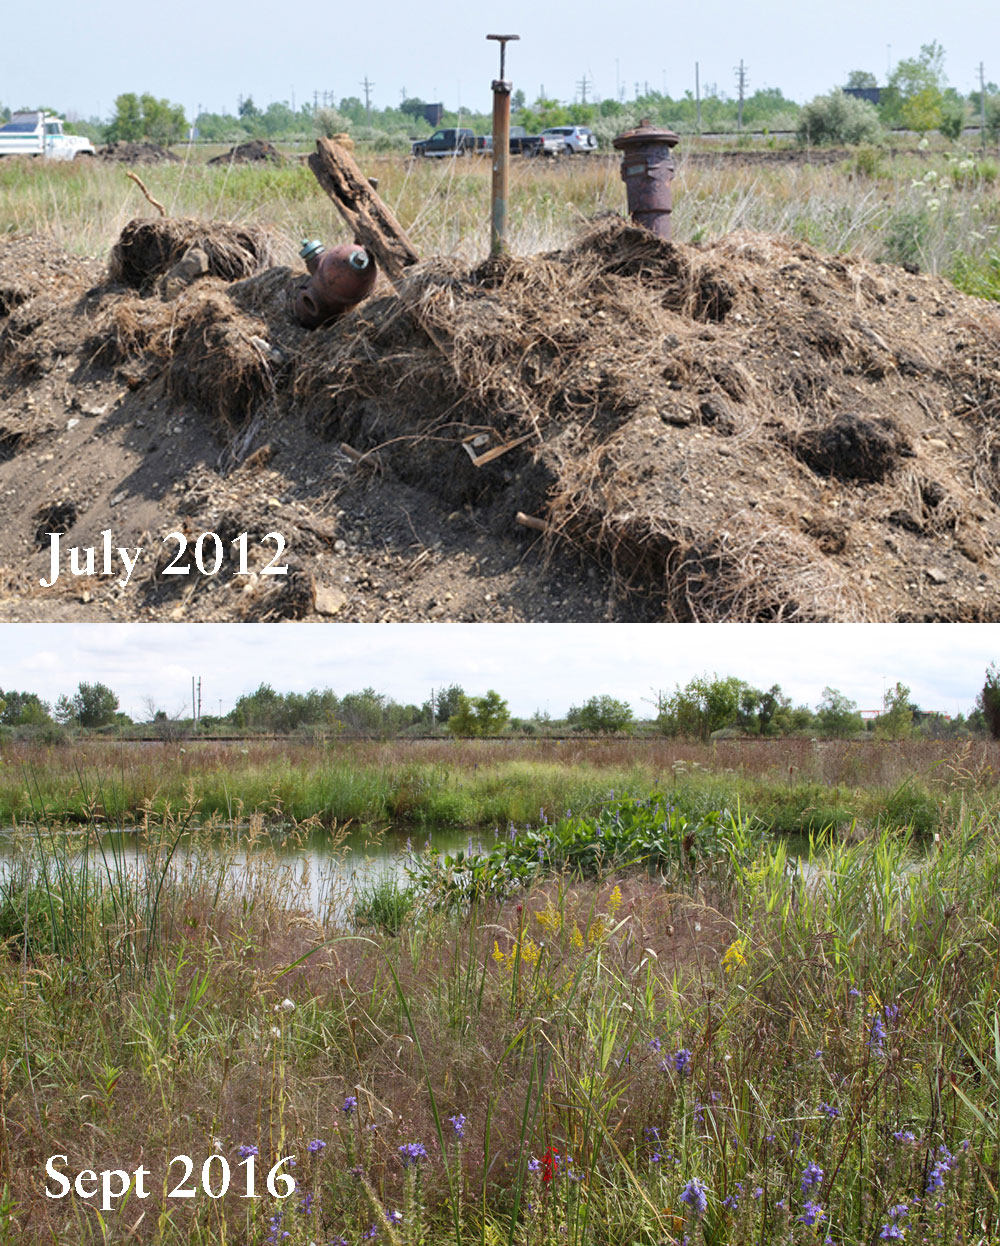 Four years after starting restoration Lobelia Meadows was already dramatically different to the naked eye, not just in the monitoring data! Photos by TWI.